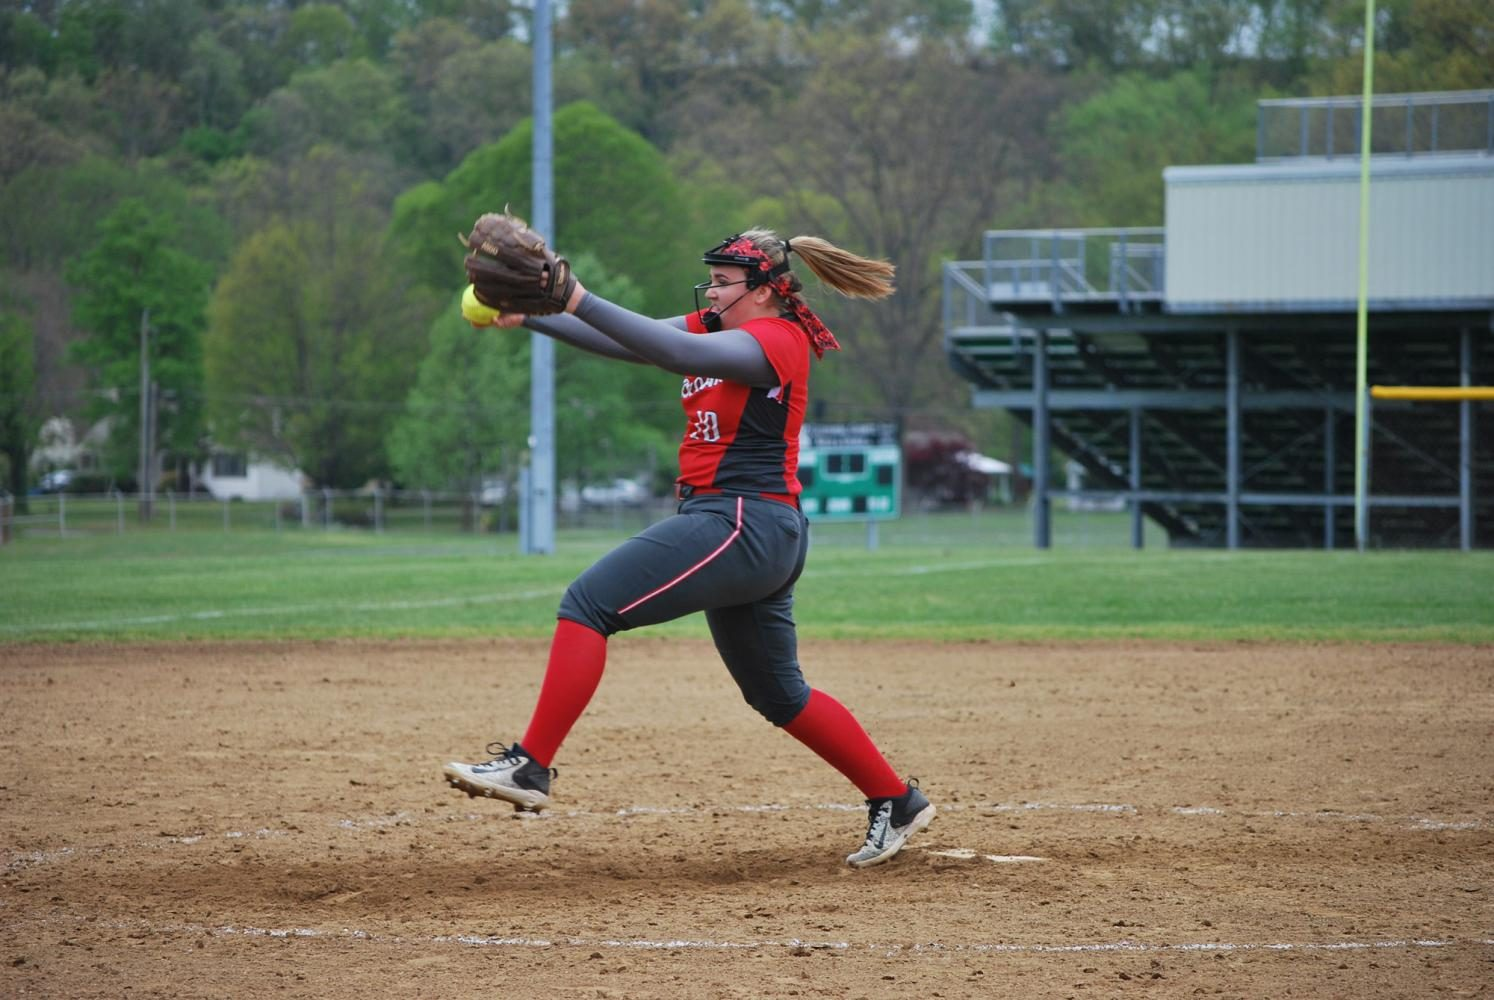 Times%E2%80%99+Athlete+of+the+Week+of+May+13+Madison+Slowinski+pitches+at+the+game+at+Riverside+on+May+4.+%0A